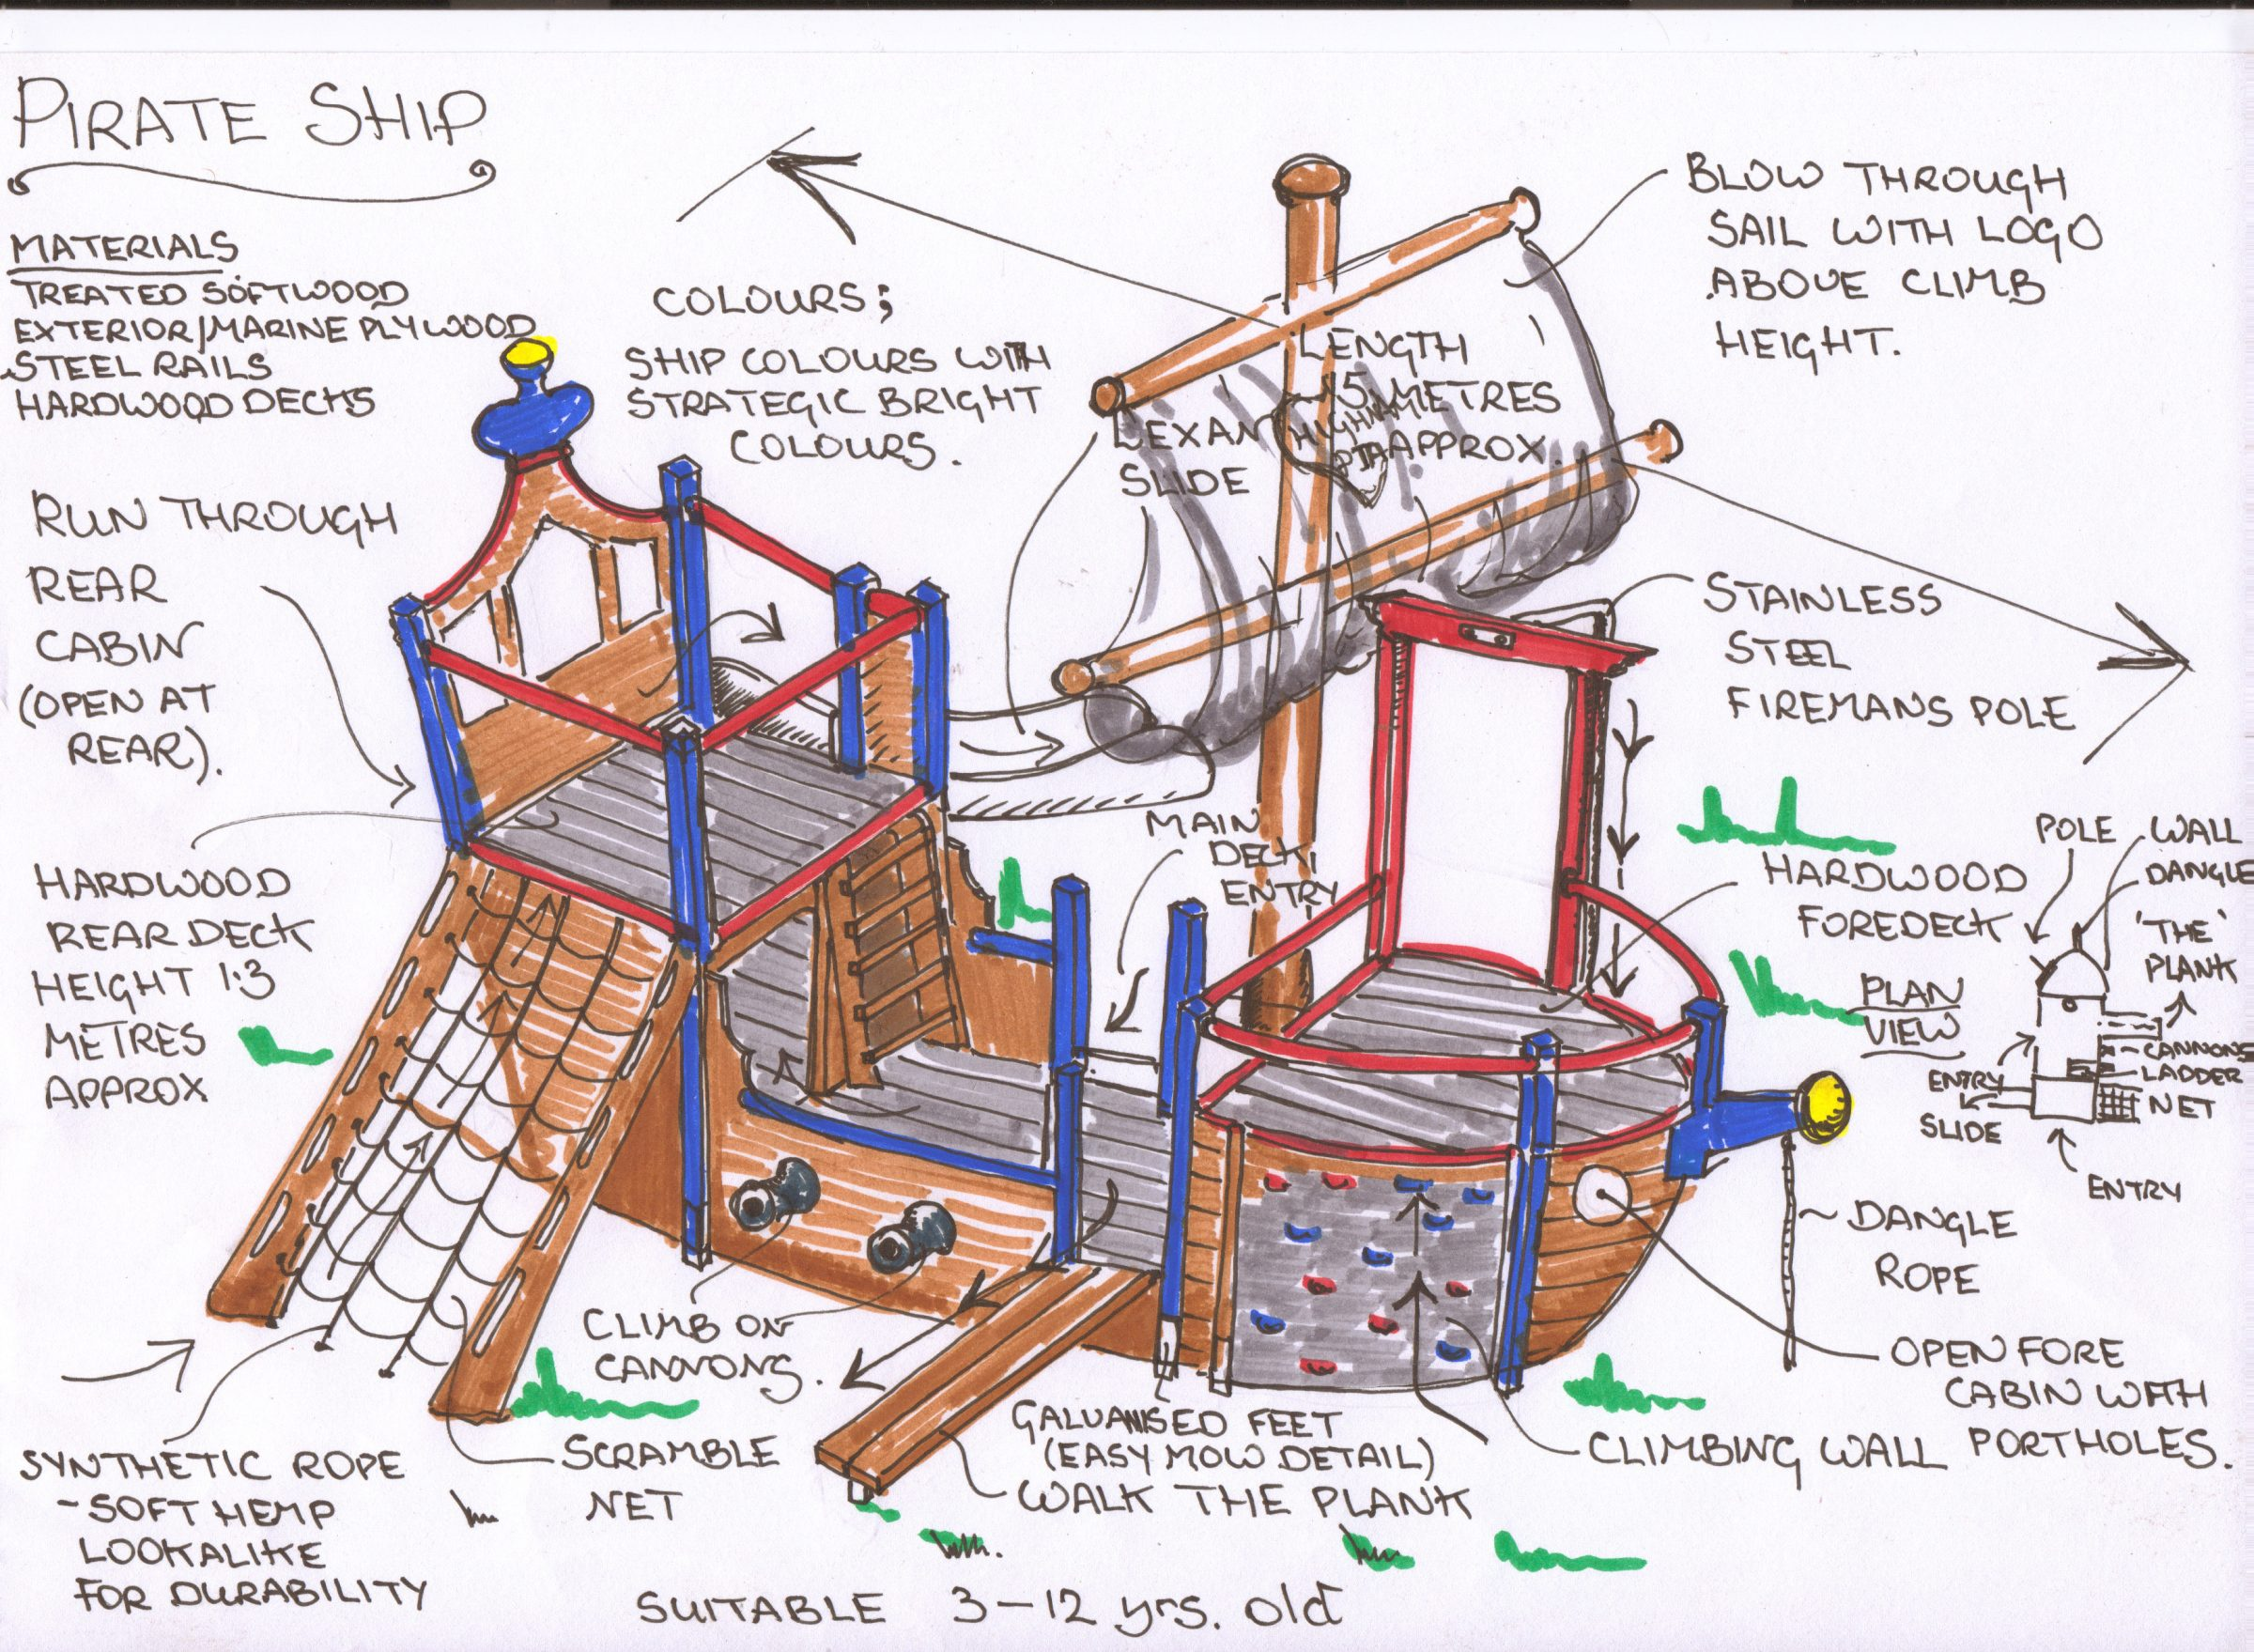 Highnam Under Fives Pirate Ship Play Area Flights Of Fantasy Simple Plant Cell Diagram For Kids A Young Children